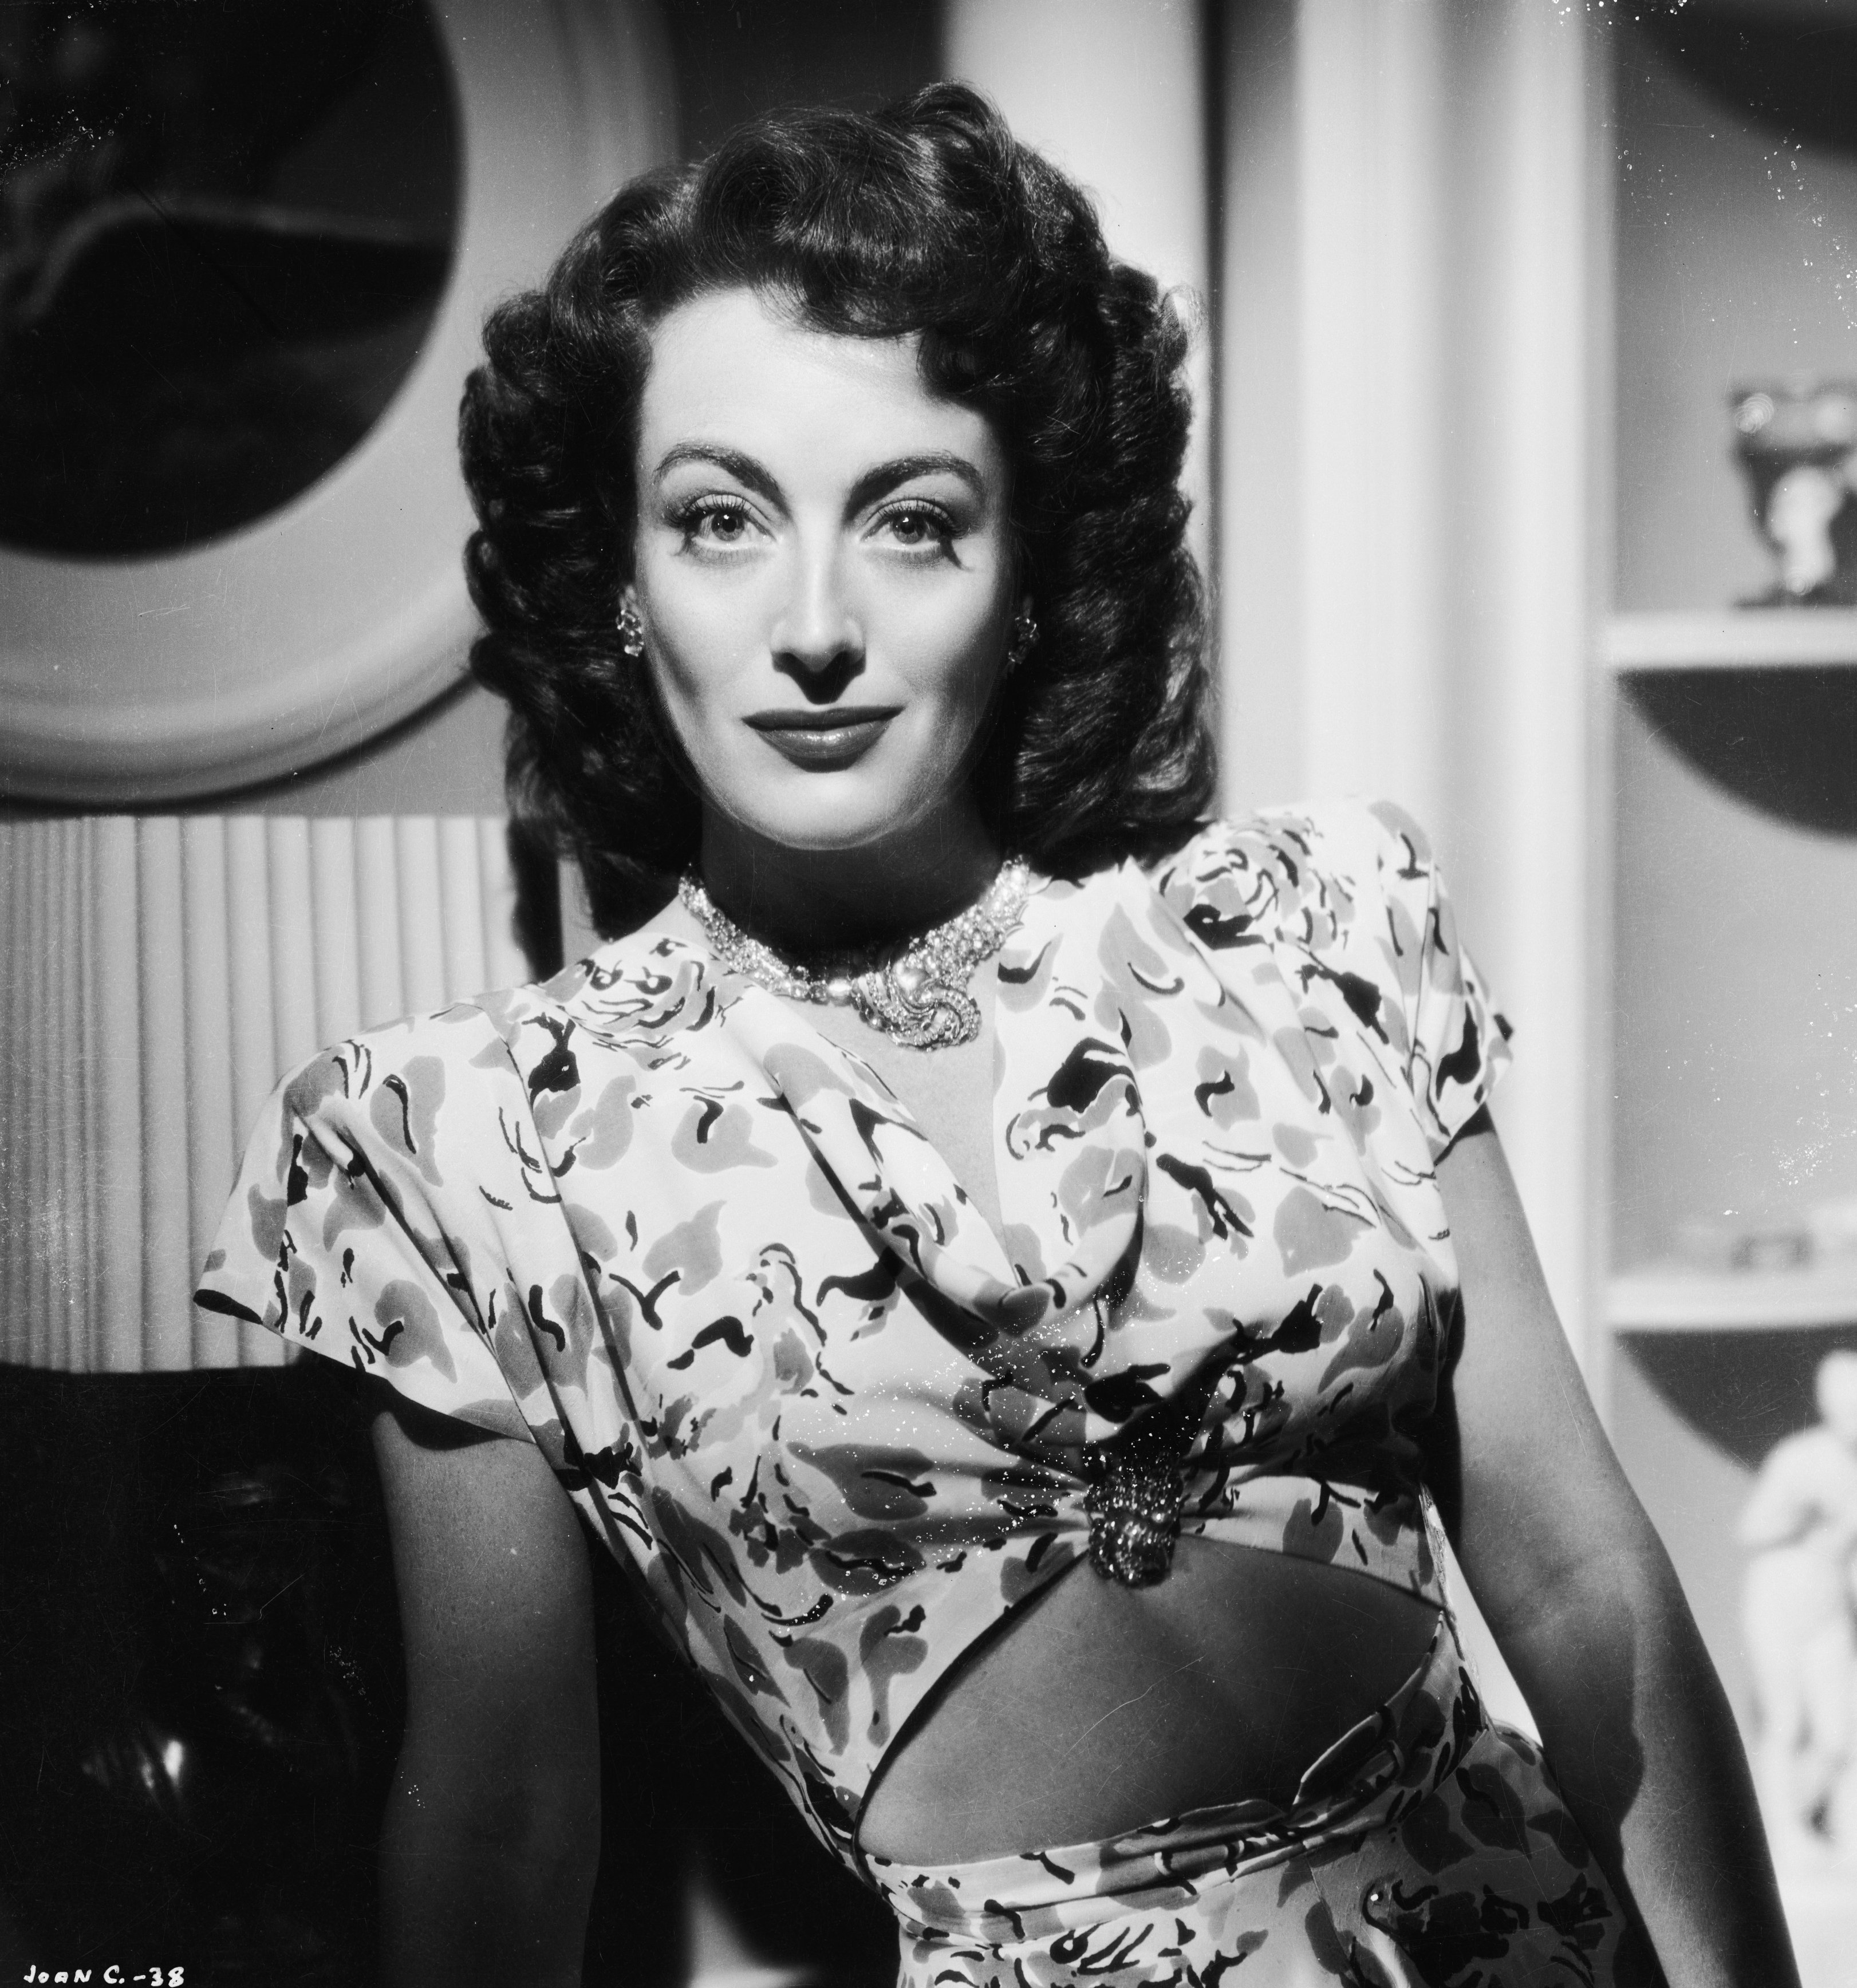 American film actress Joan Crawford (1908 - 1977) in her  starring role in 'Mildred Pierce', circa 1944:  Source: Getty Images